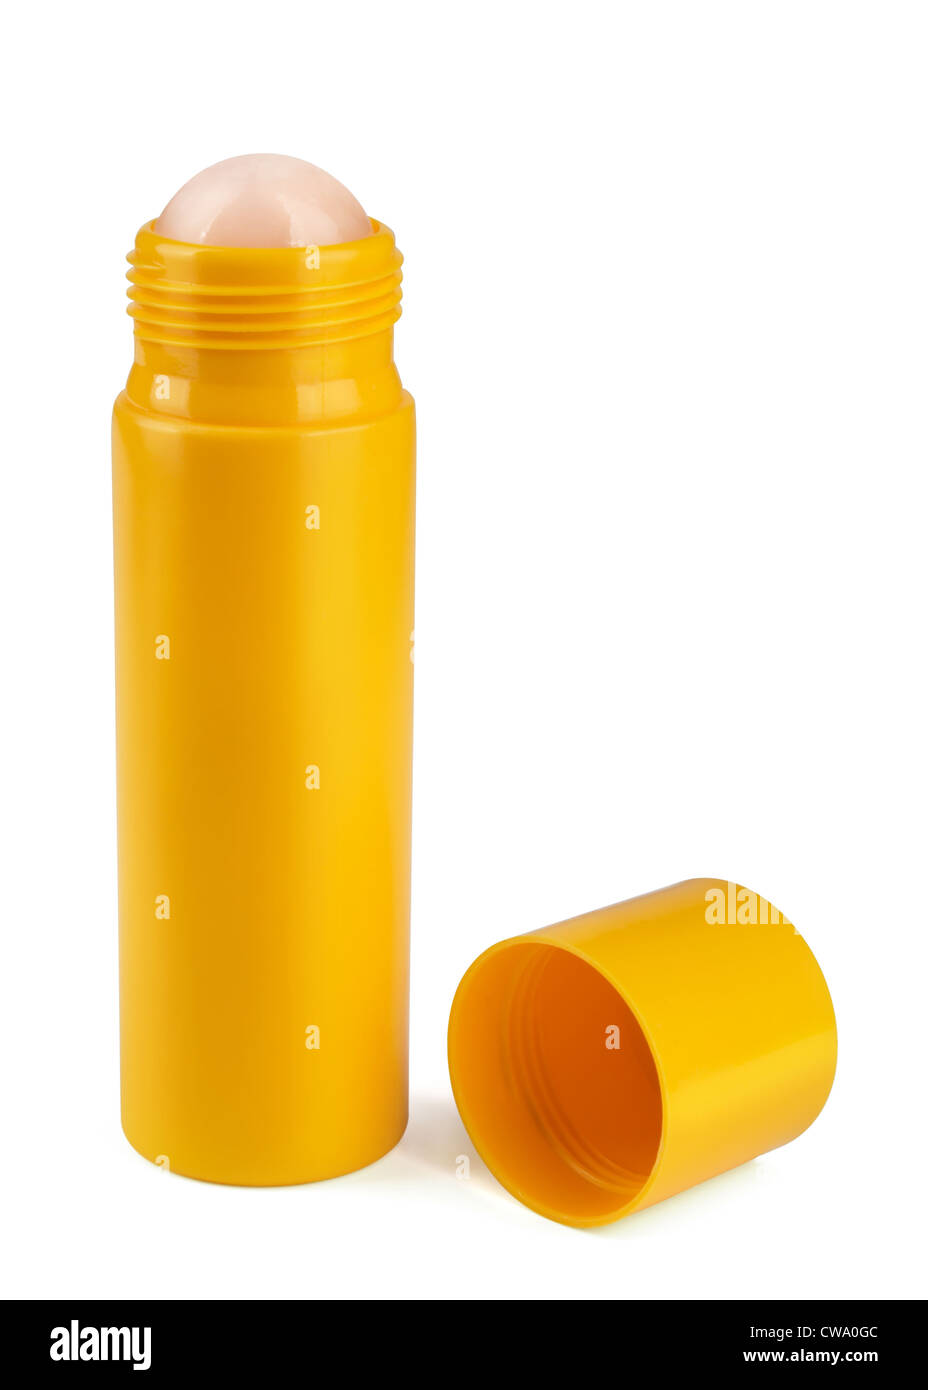 Yellow roll-on deodorant isolated on white - Stock Image